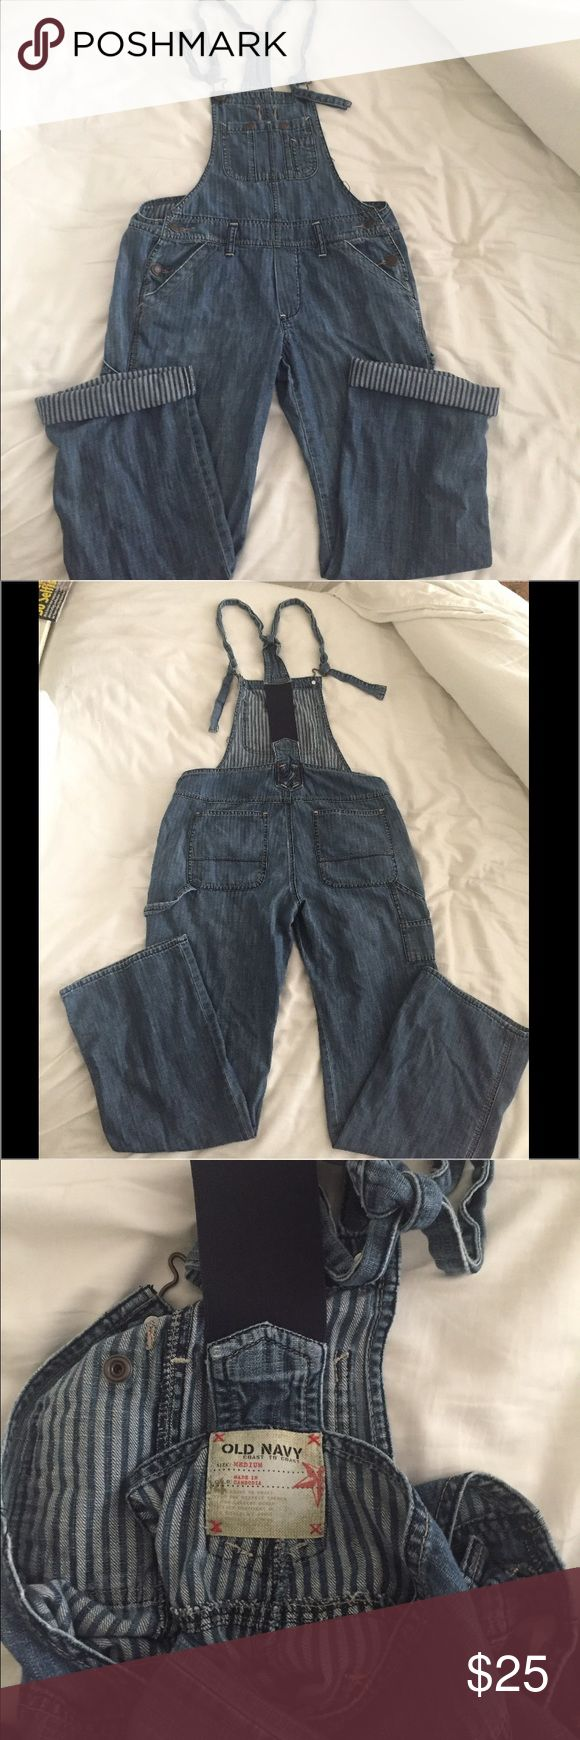 Old Navy overalls ☀️🌼💕Sz Medium Old navy overalls with stripes when cropped 😍💕carpenter style light weight denim not heavy at all super soft. Sz Medium Old Navy  Jeans Overalls